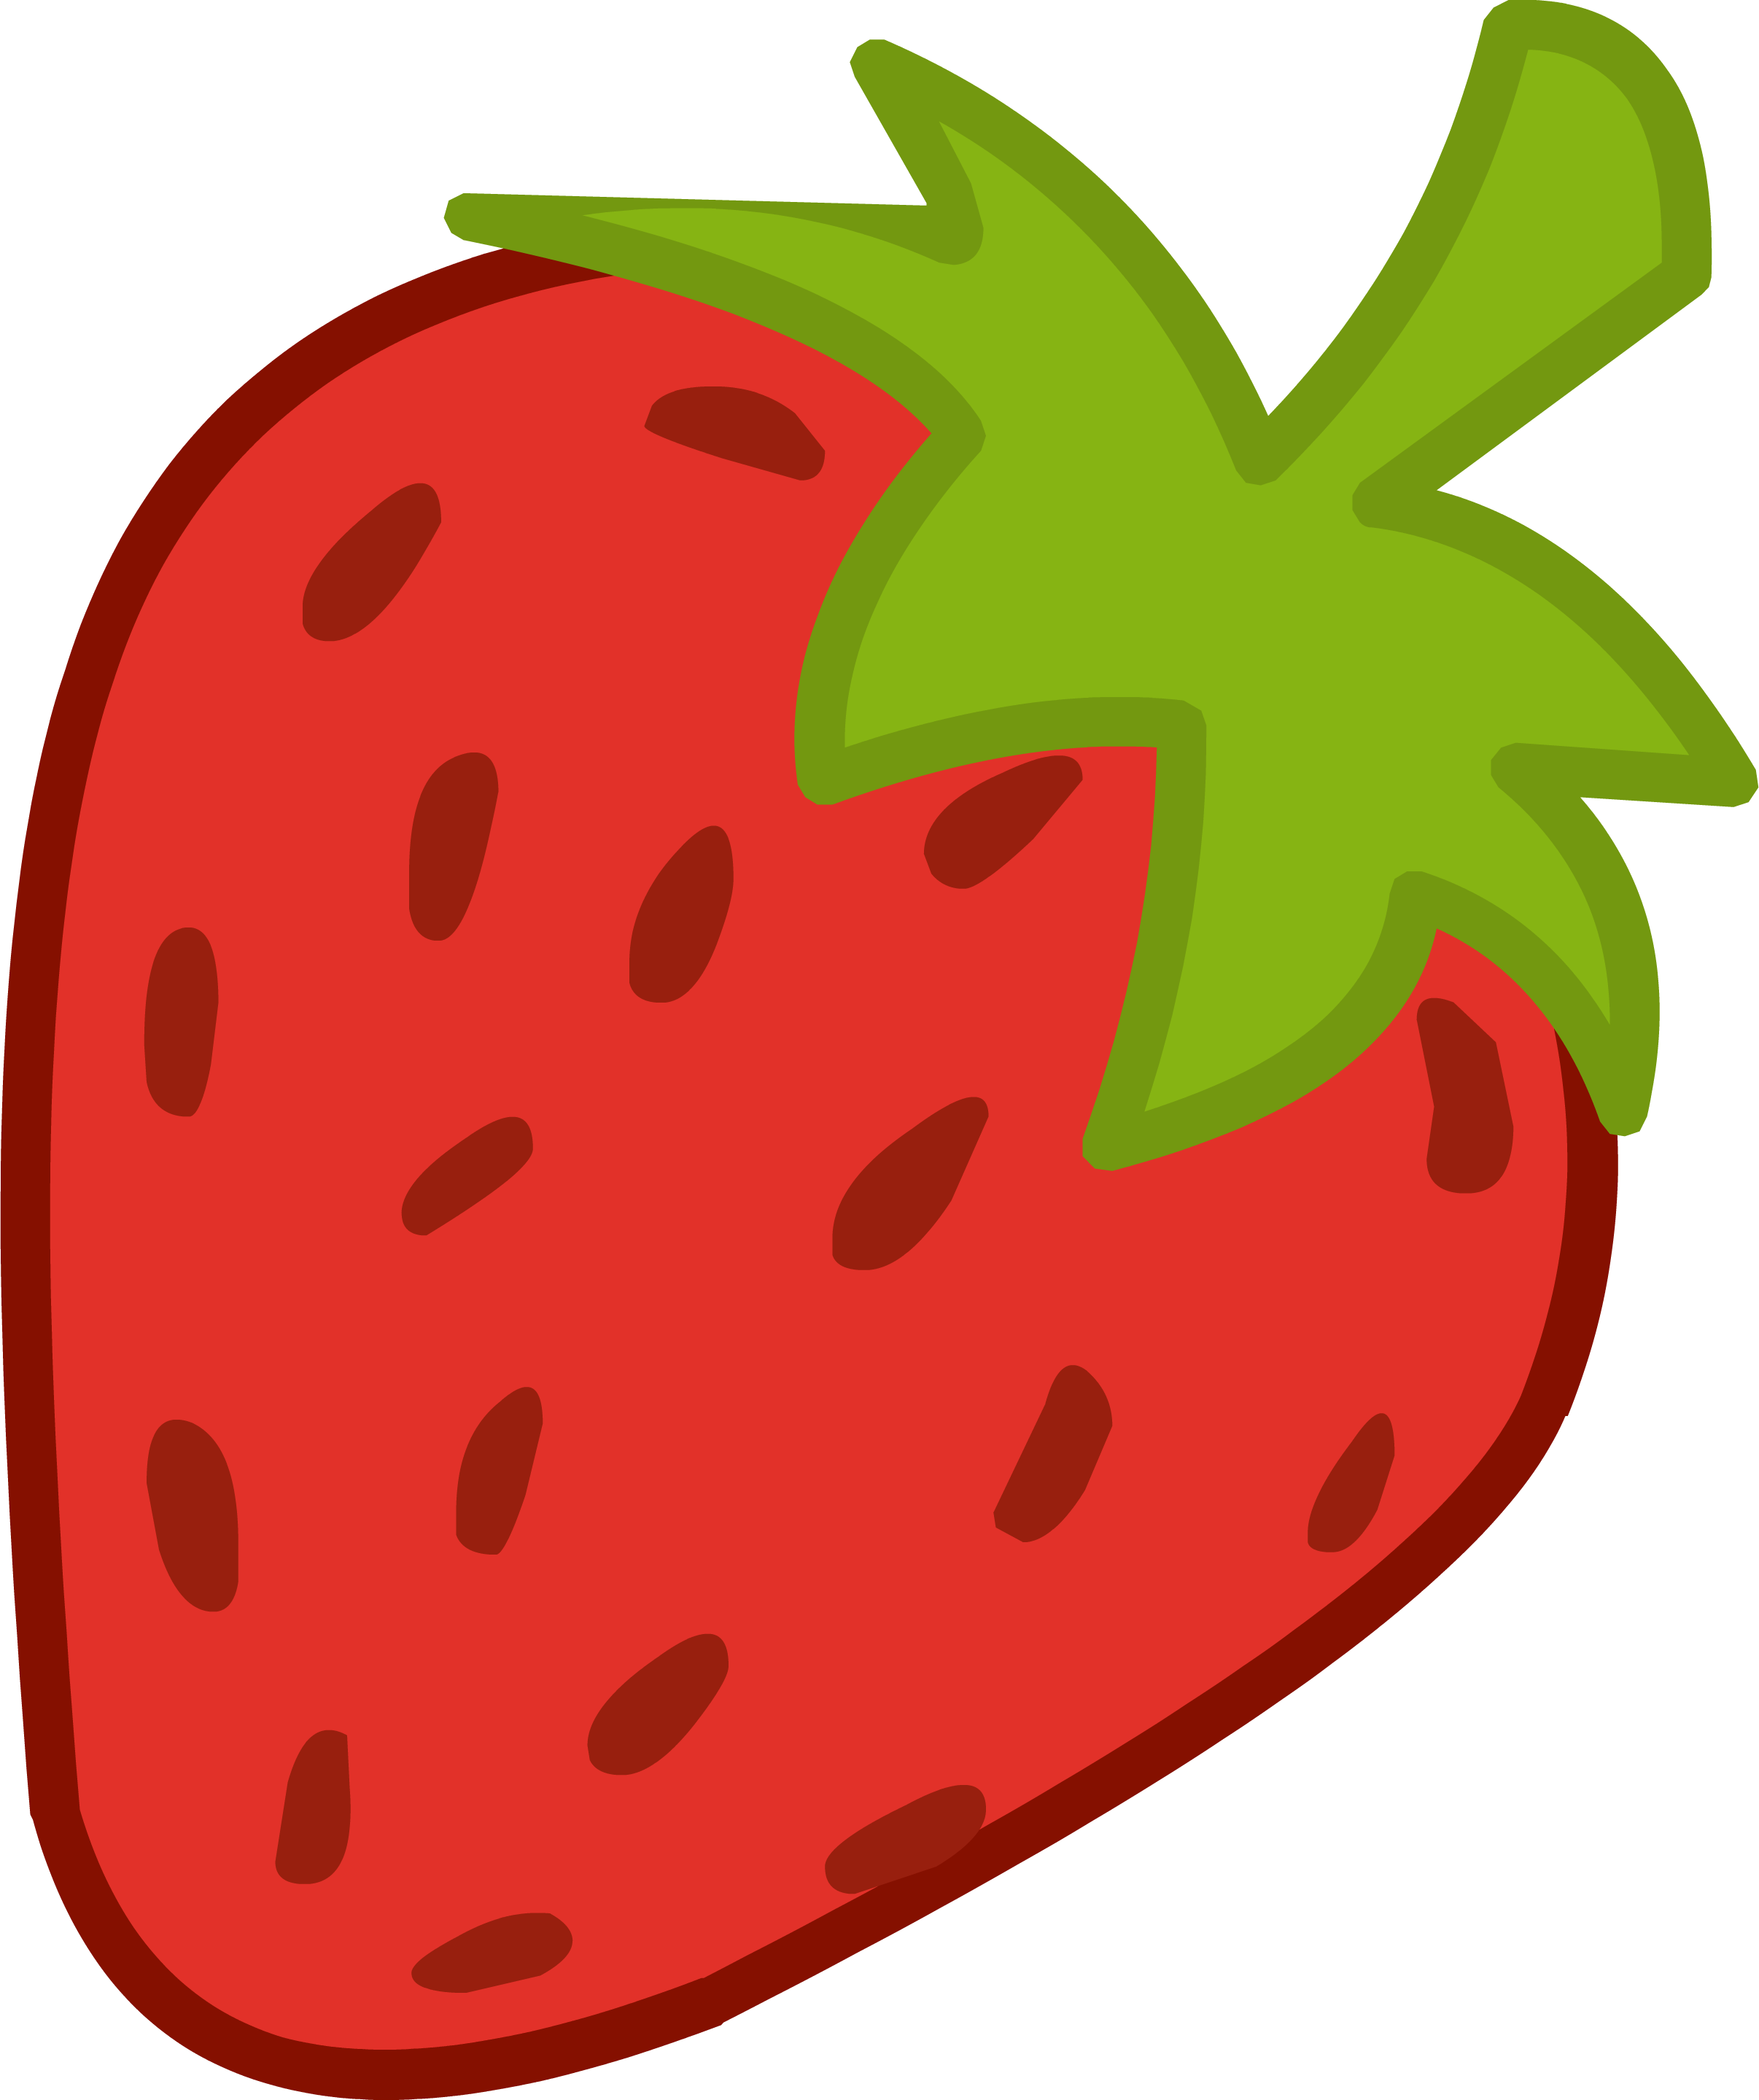 Strawberry clipart strawberry fruit clip art downloadclipart org 2.